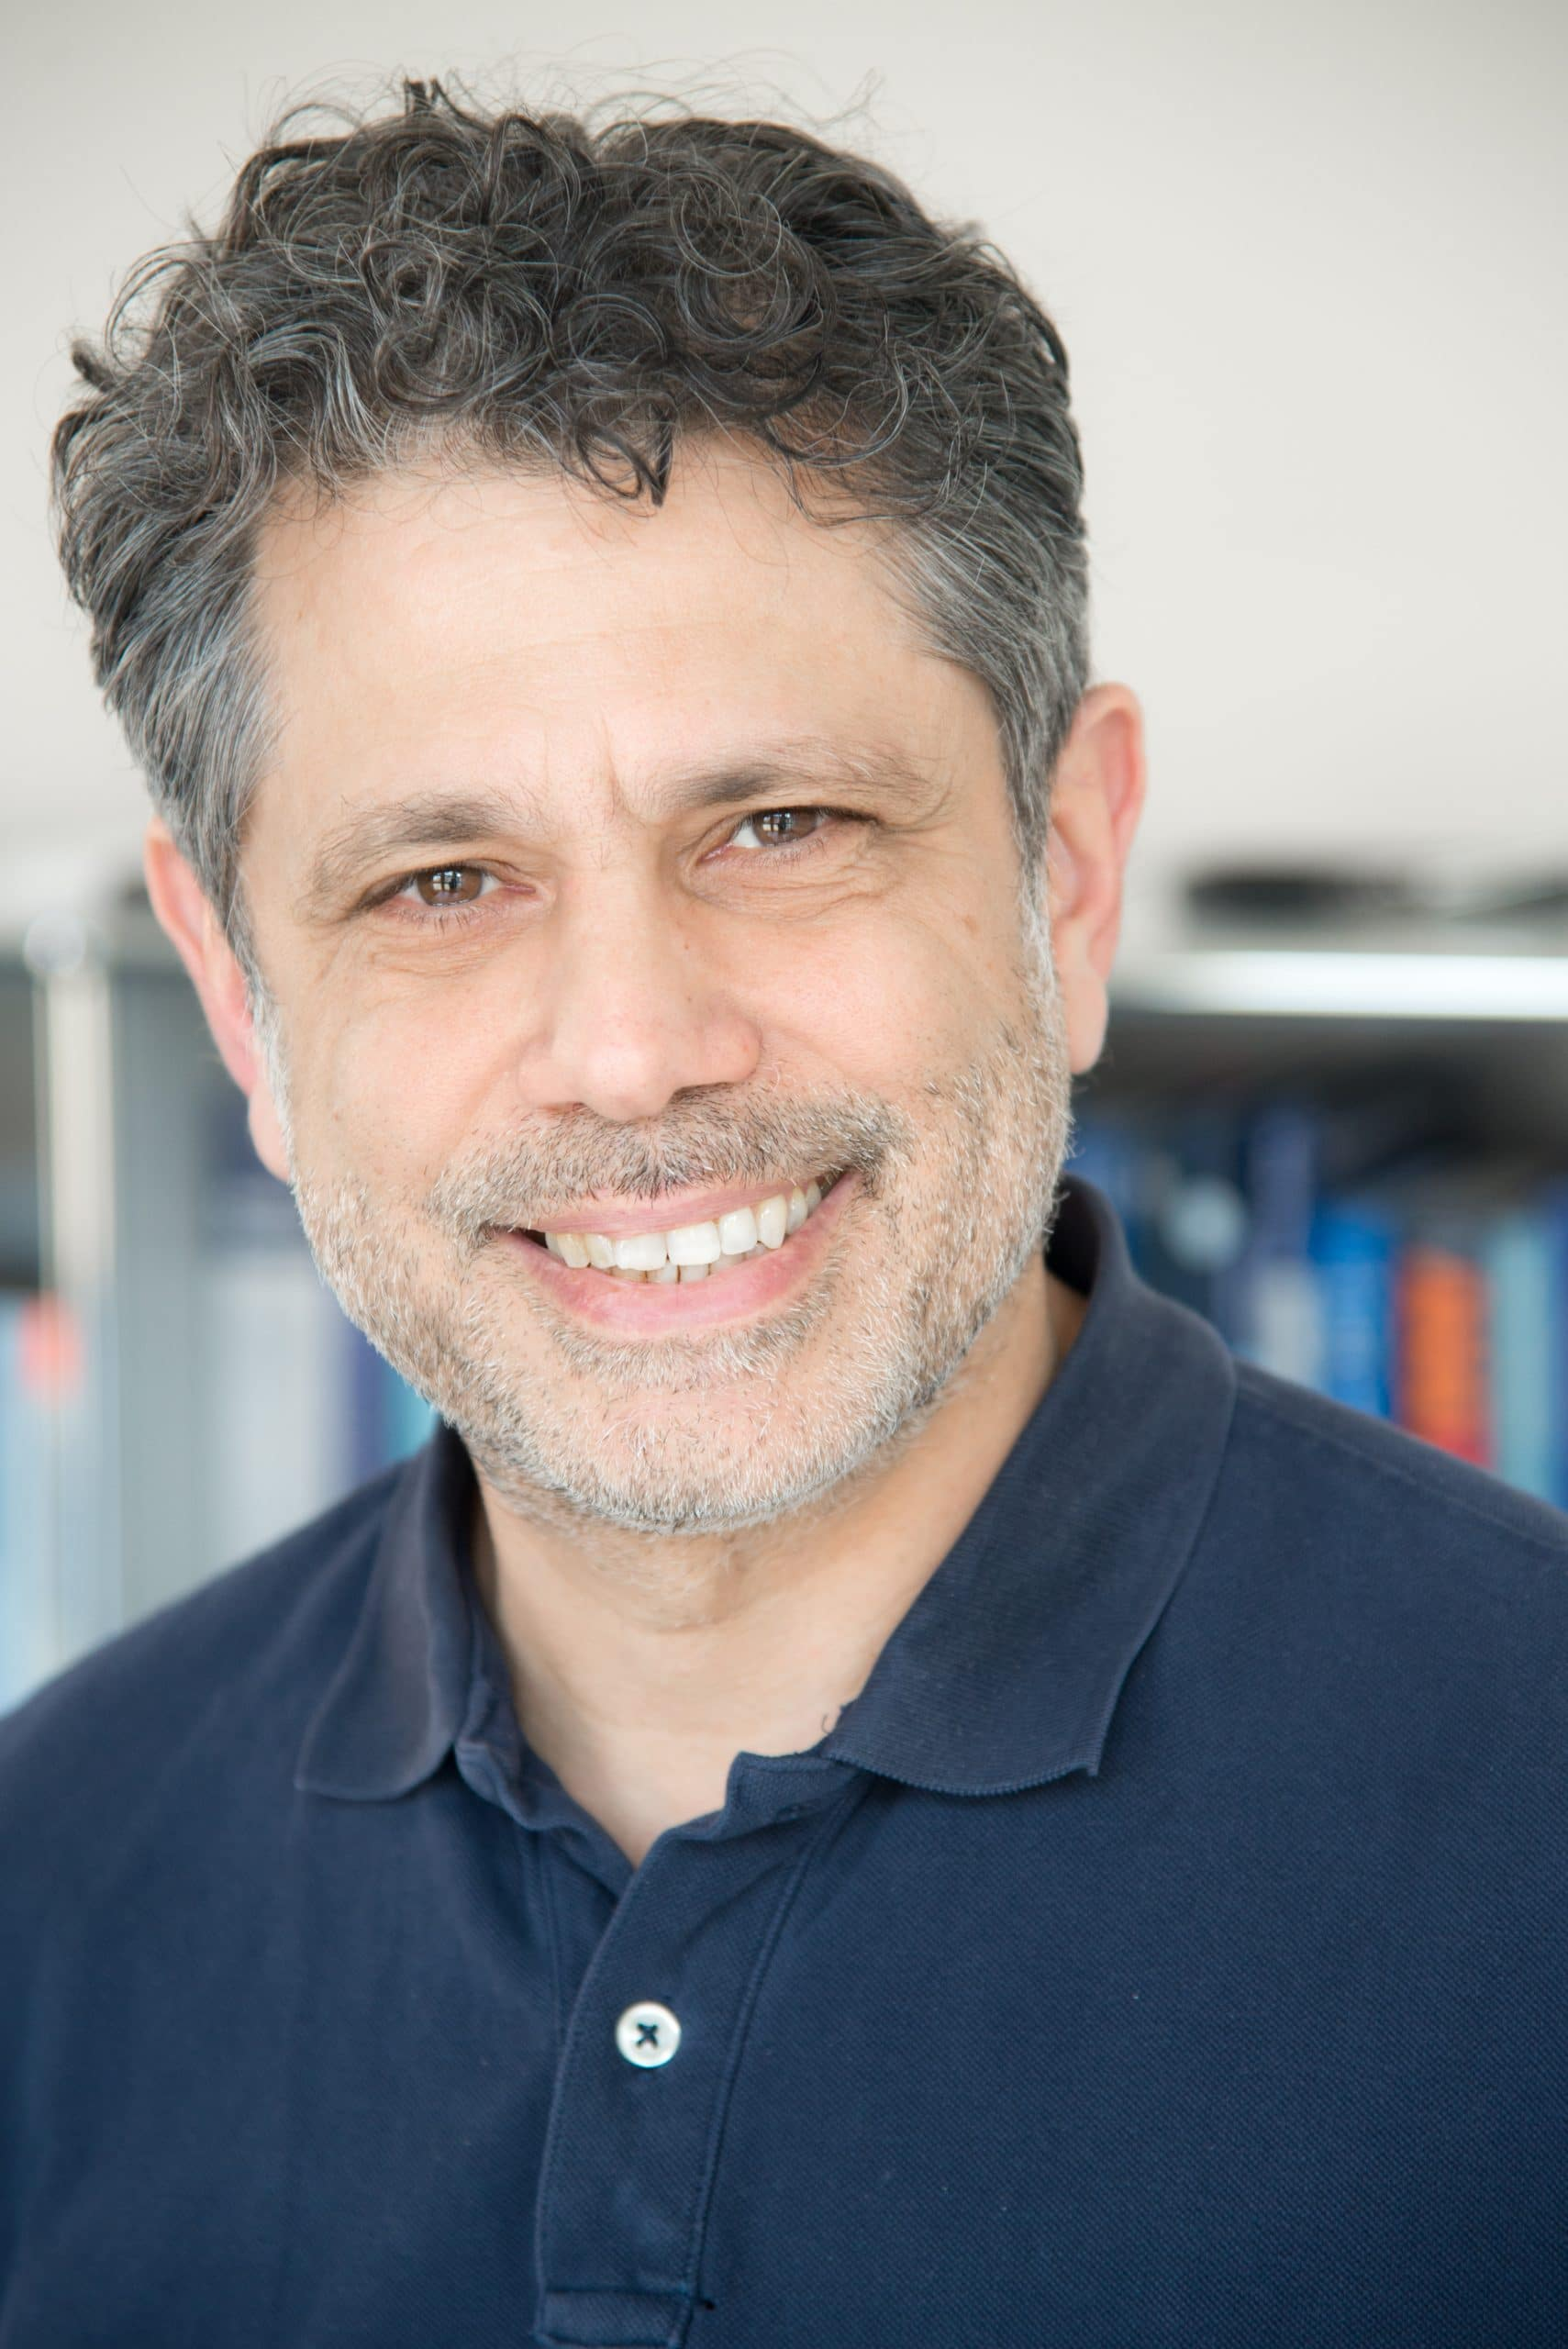 PD Dr. Med. Michael Siassi